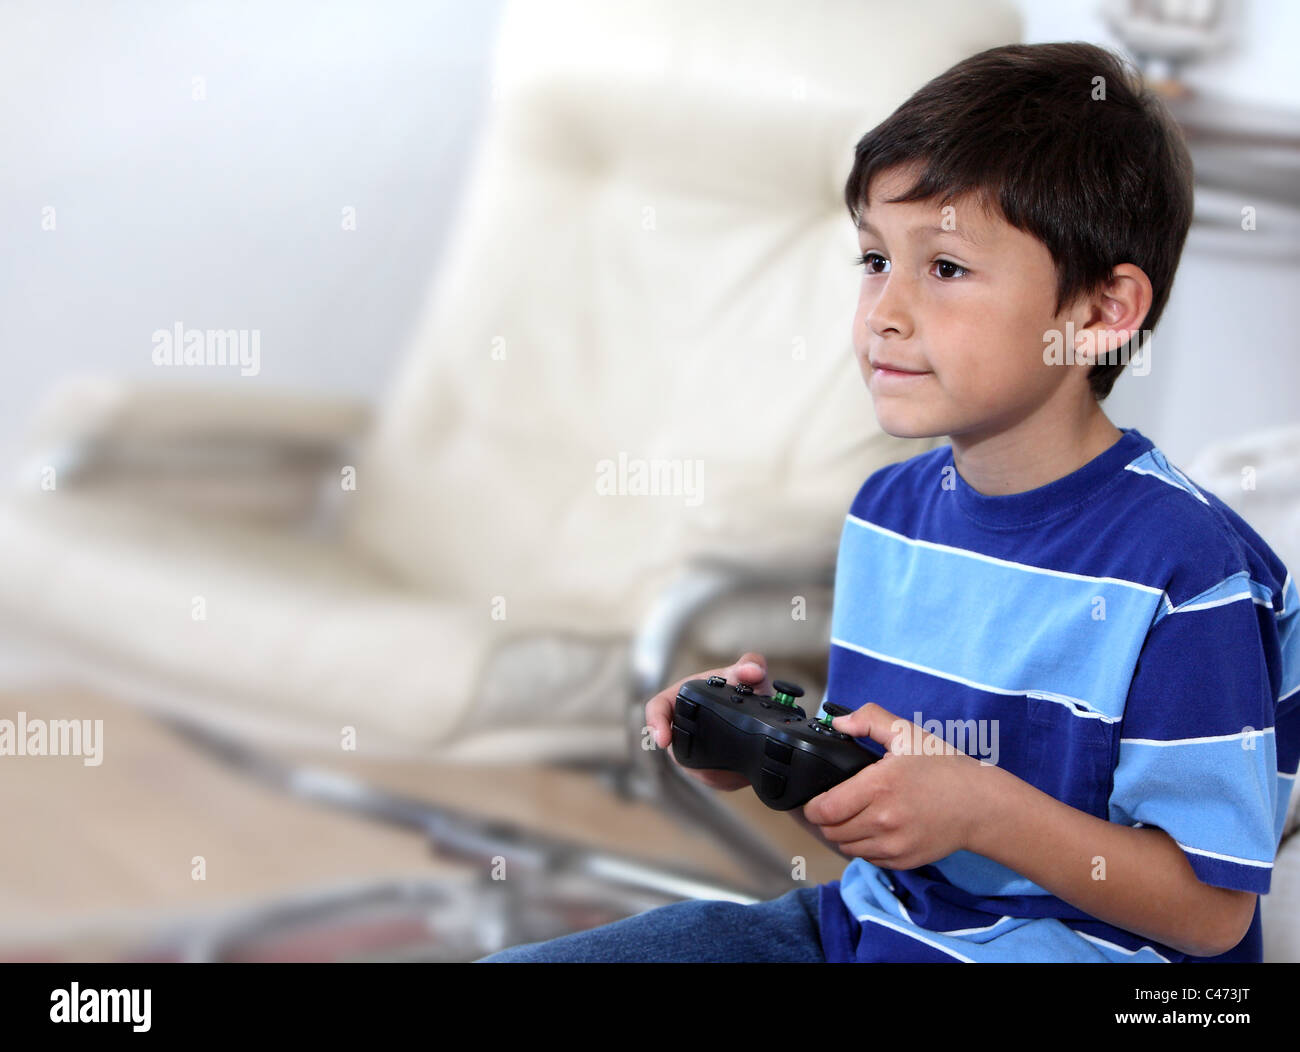 Young hispanic or Latino boy playing with a video game - with copy space to left - Stock Image